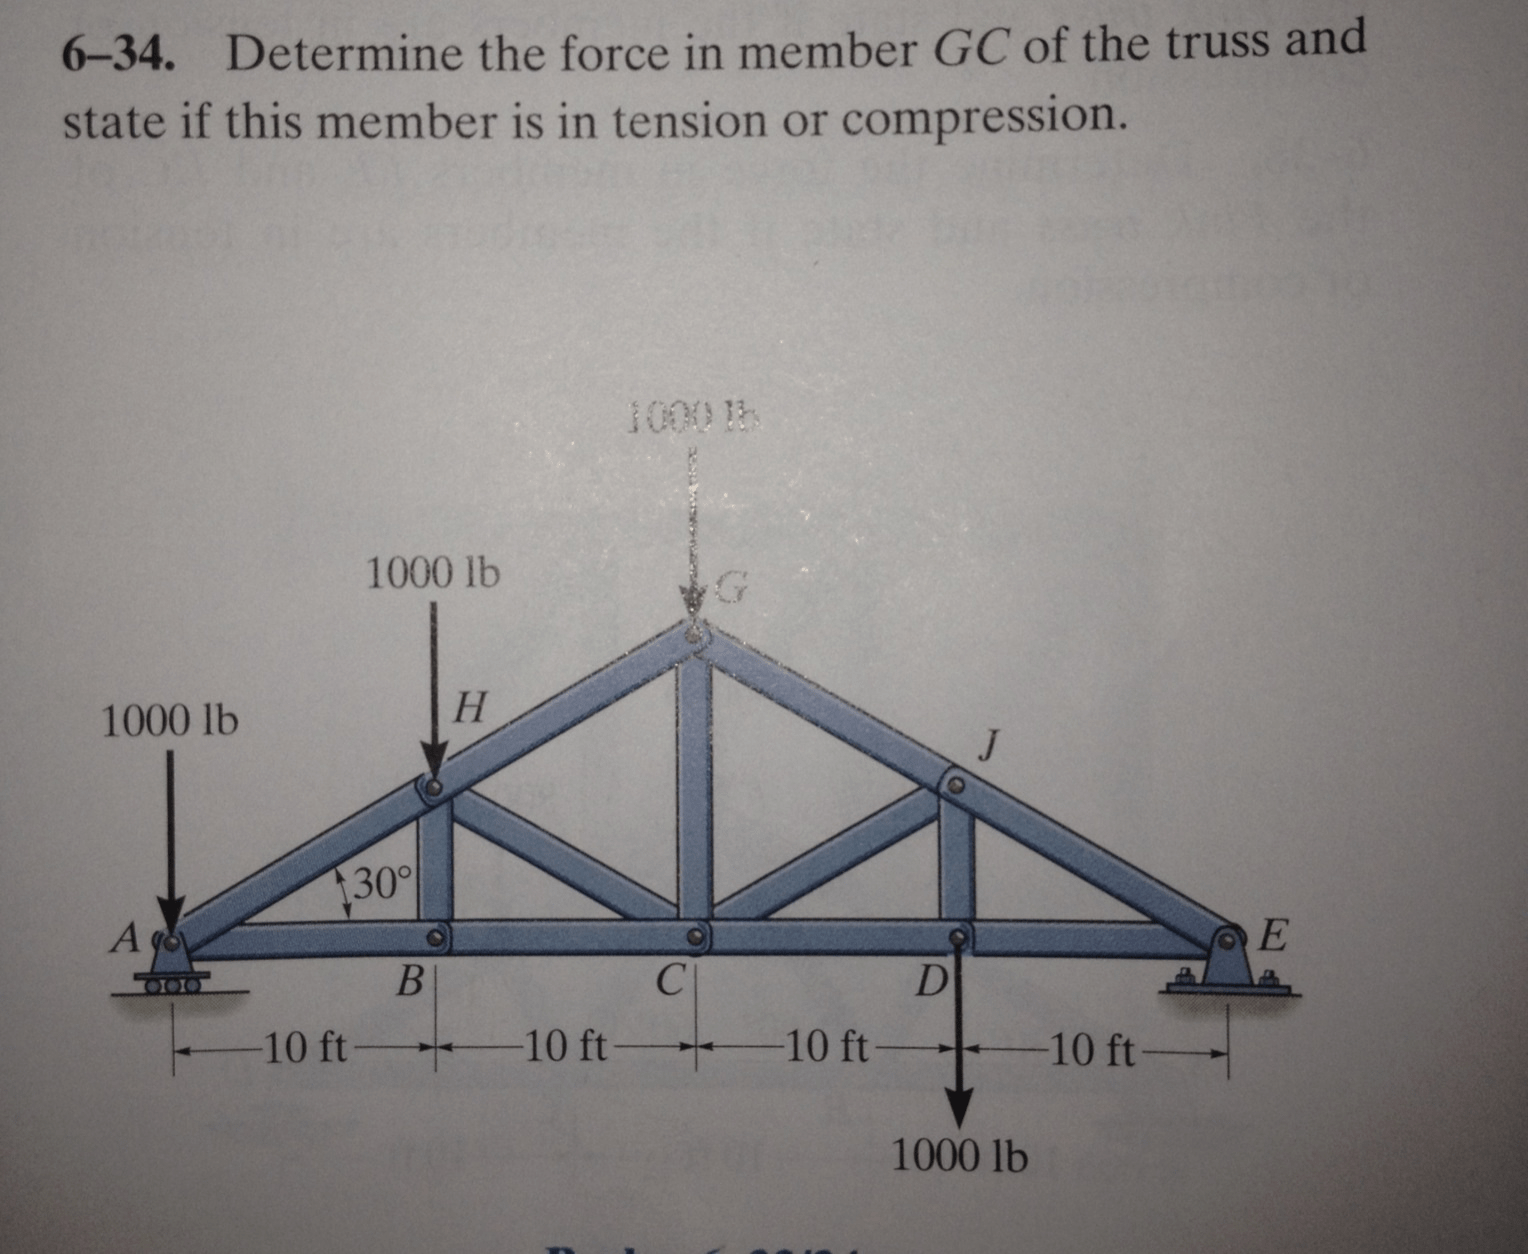 truss tension and compression diagram 2004 chrysler sebring radio wiring solved 6 34 determine the force in member gc of trus